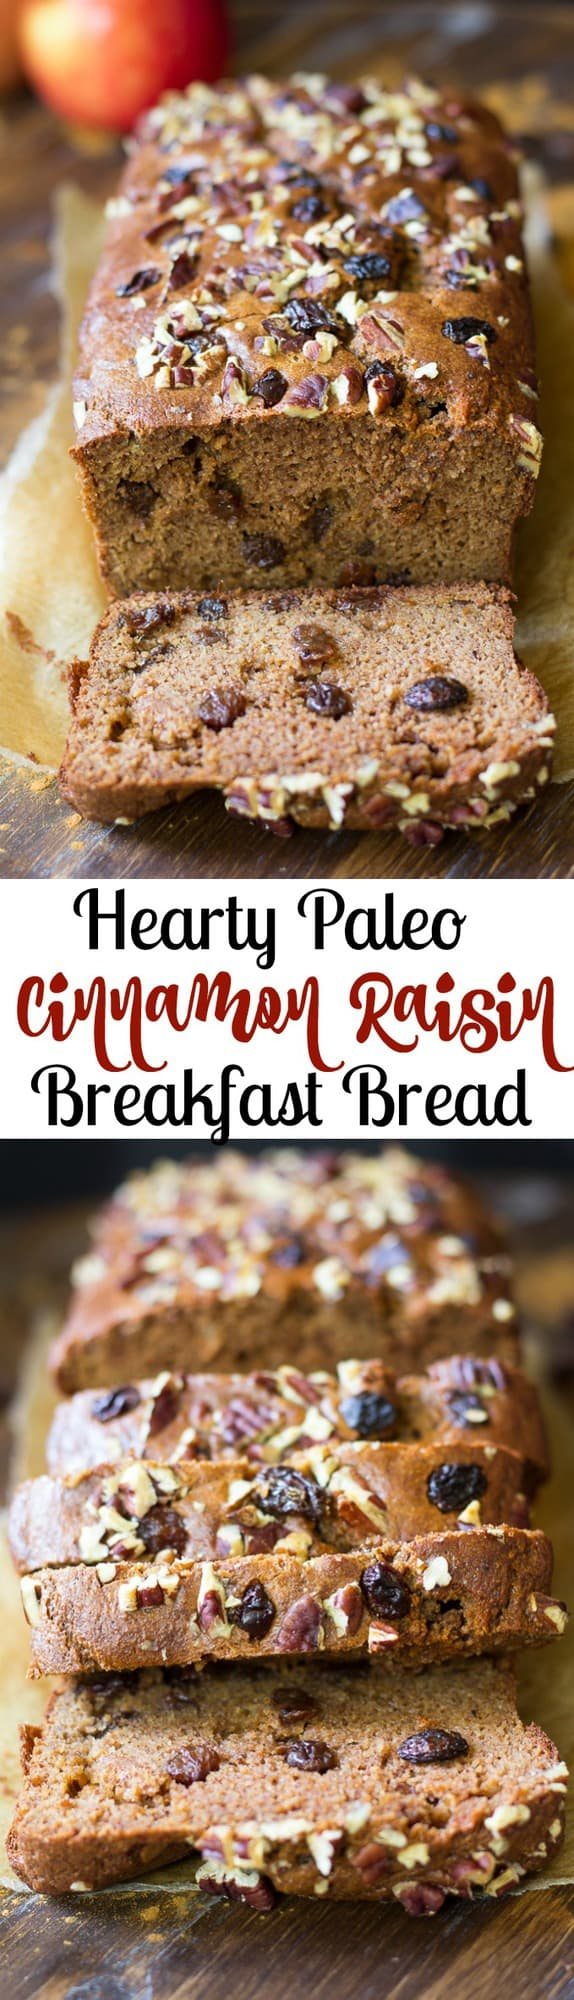 Hearty Cinnamon Raisin Paleo Breakfast Bread that's great alone or ...